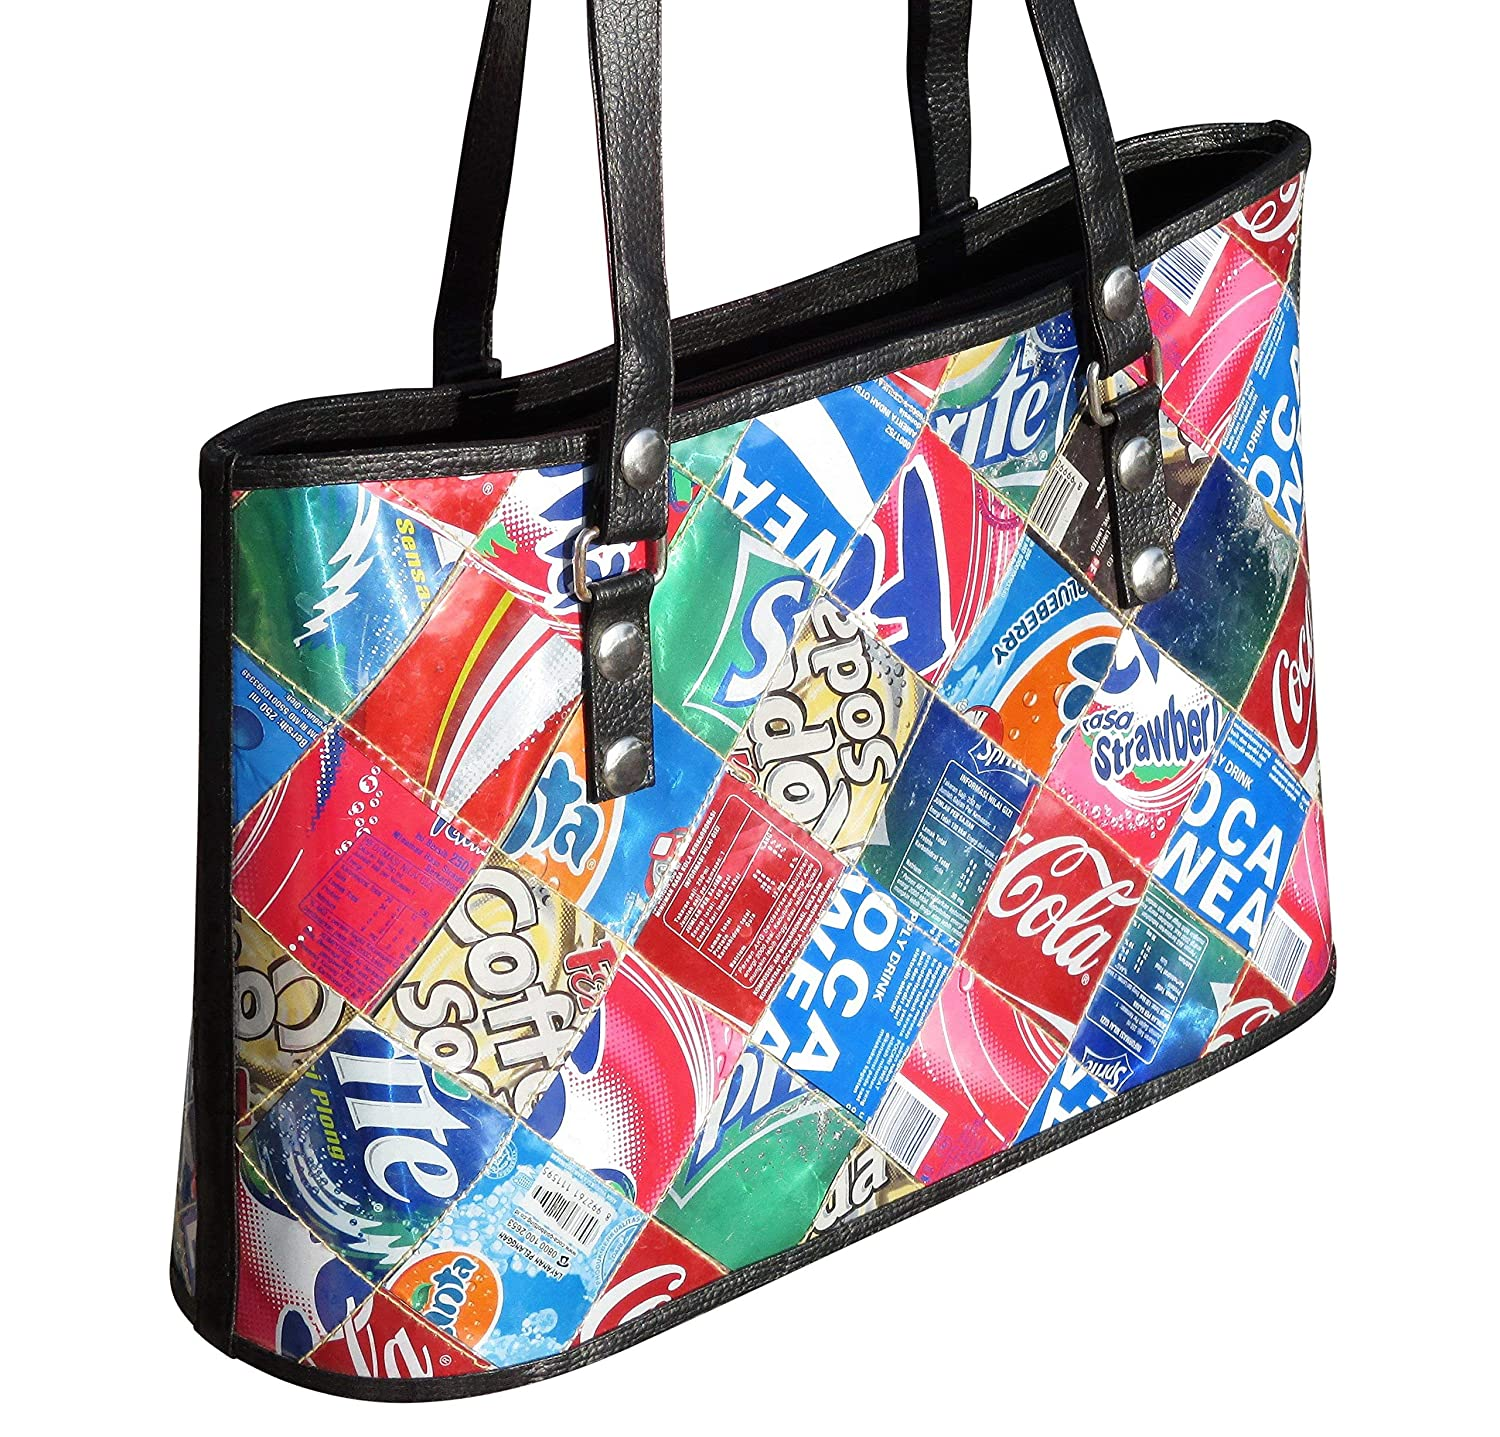 a9440b131b Handbag made from soda can - FREE SHIPPING - vegans recycled handmade bag  earth lover lovers style Fair trade ethical fun present presents inspiring  ...